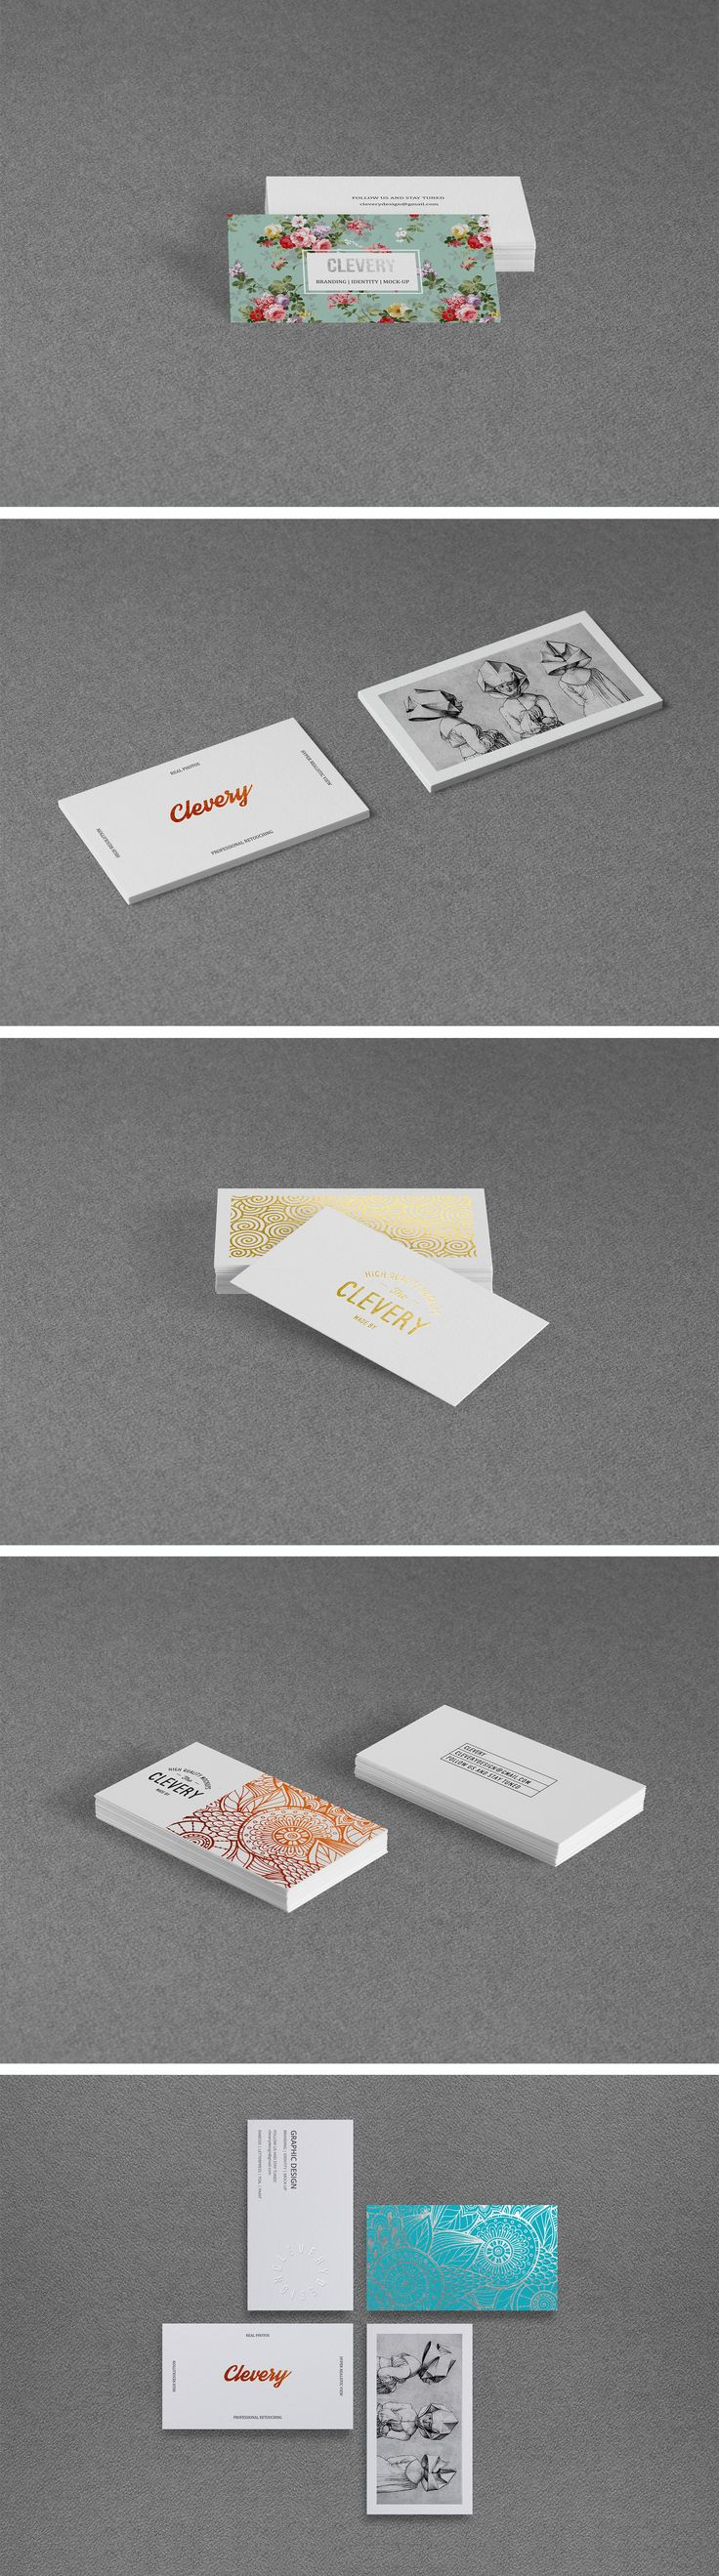 148 best business cards images on pinterest